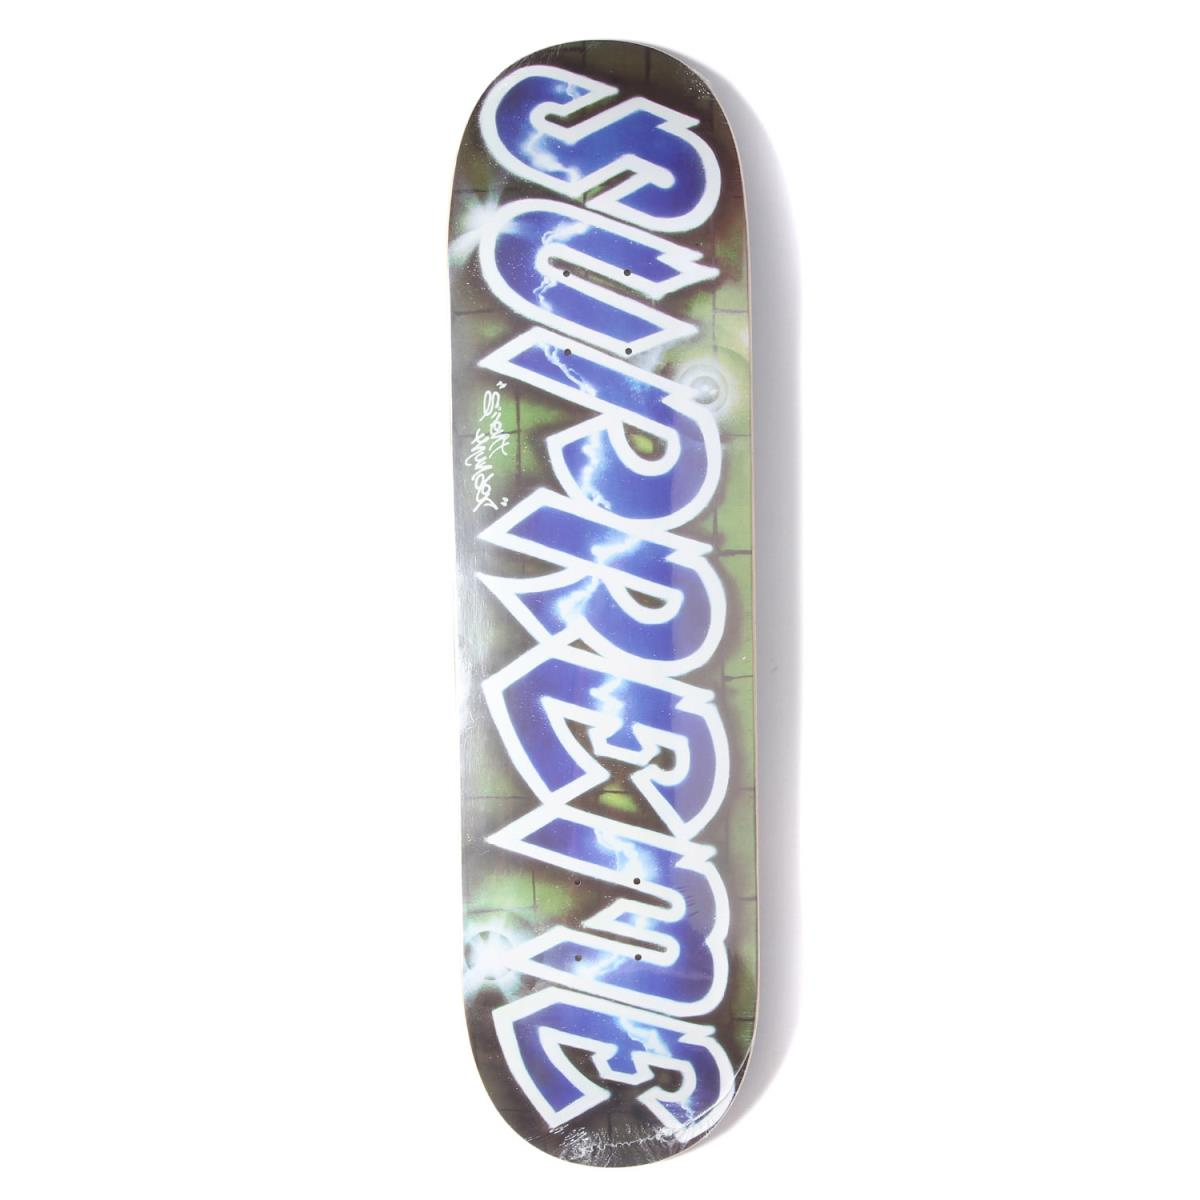 パーツ, デッキ Supreme 18SS Lee Quinones Skateboard Deck K2783